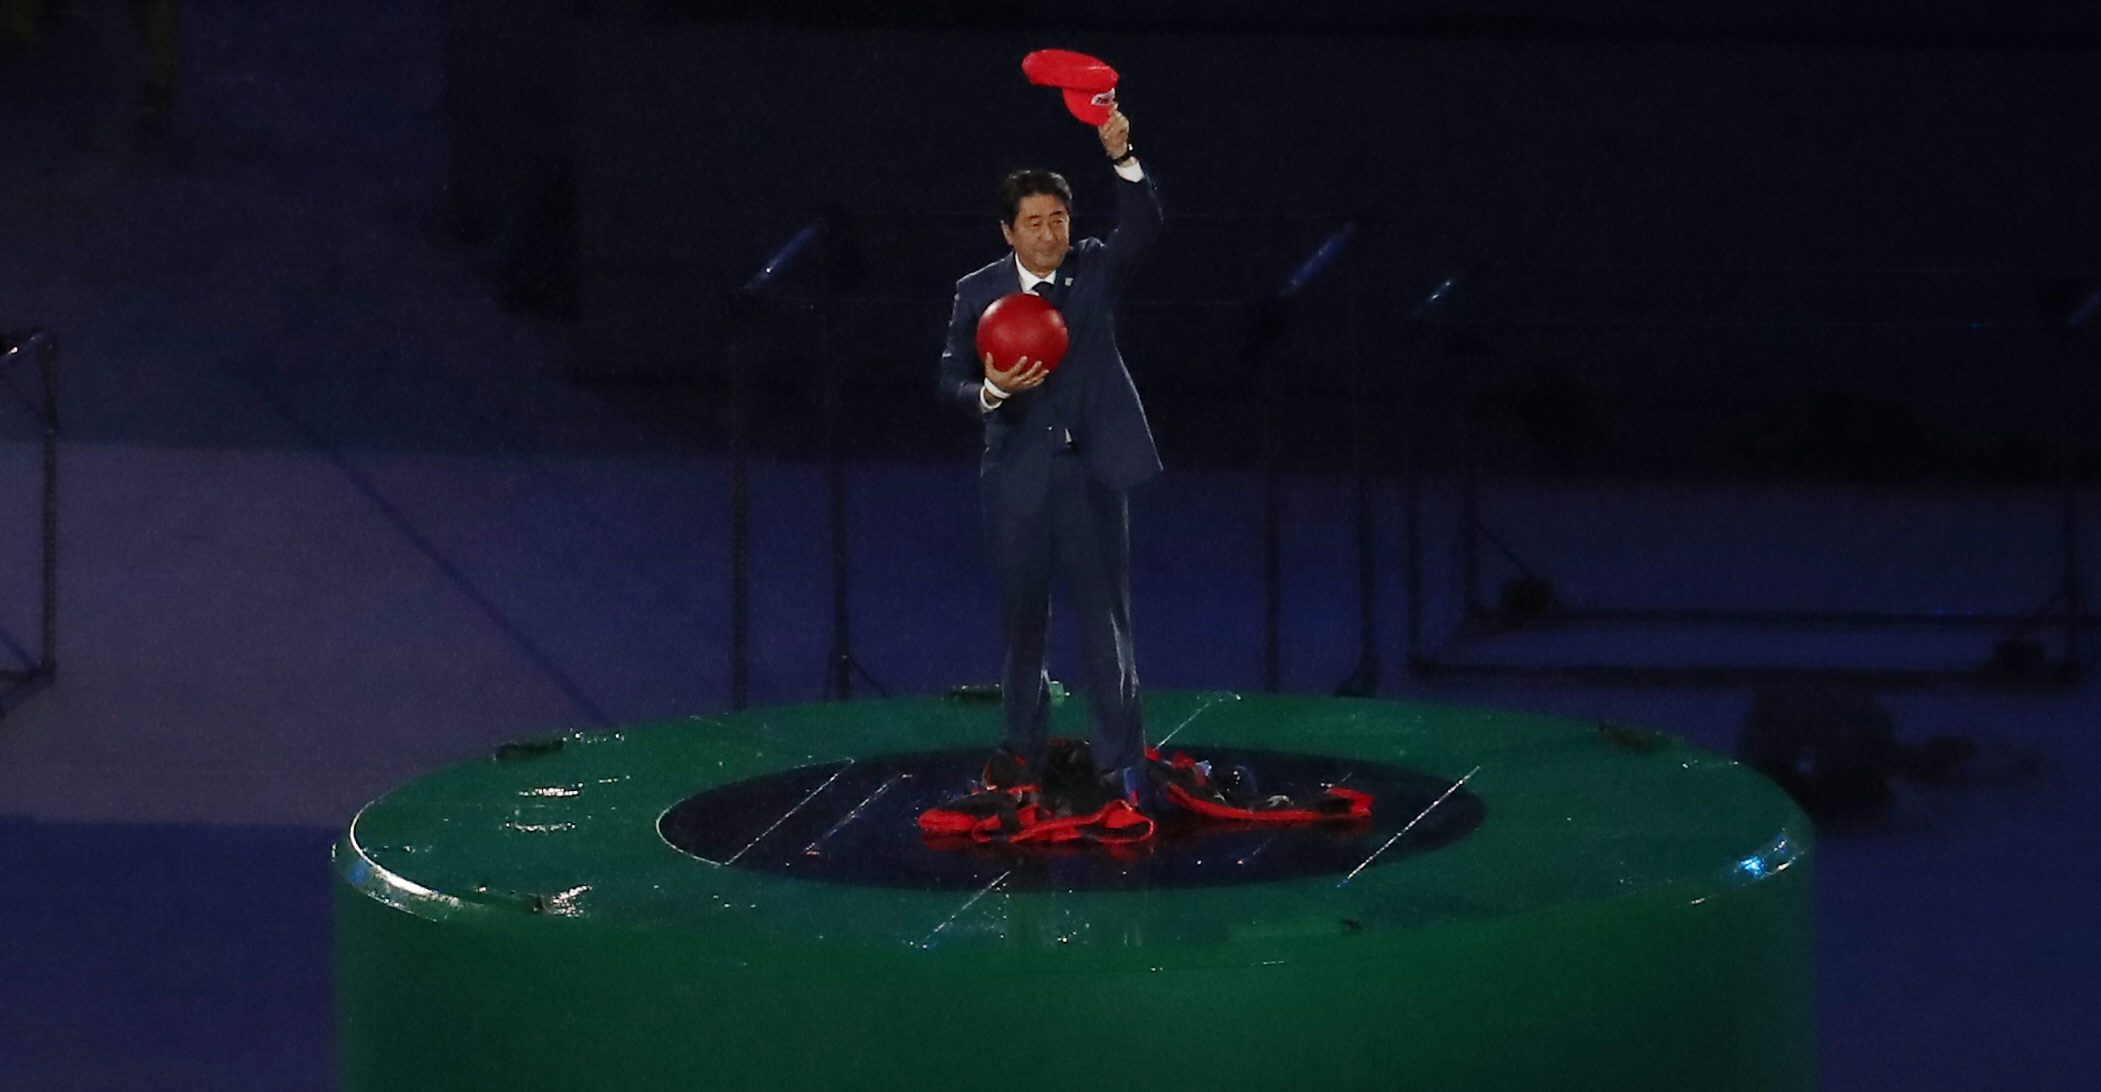 Japanese Prime Minister Shinzo Abe takes part in the closing ceremony of the 31st Summer Olympic Games at the Maracana Stadium in Rio de Janeiro, Brazil, 21 August 2016.